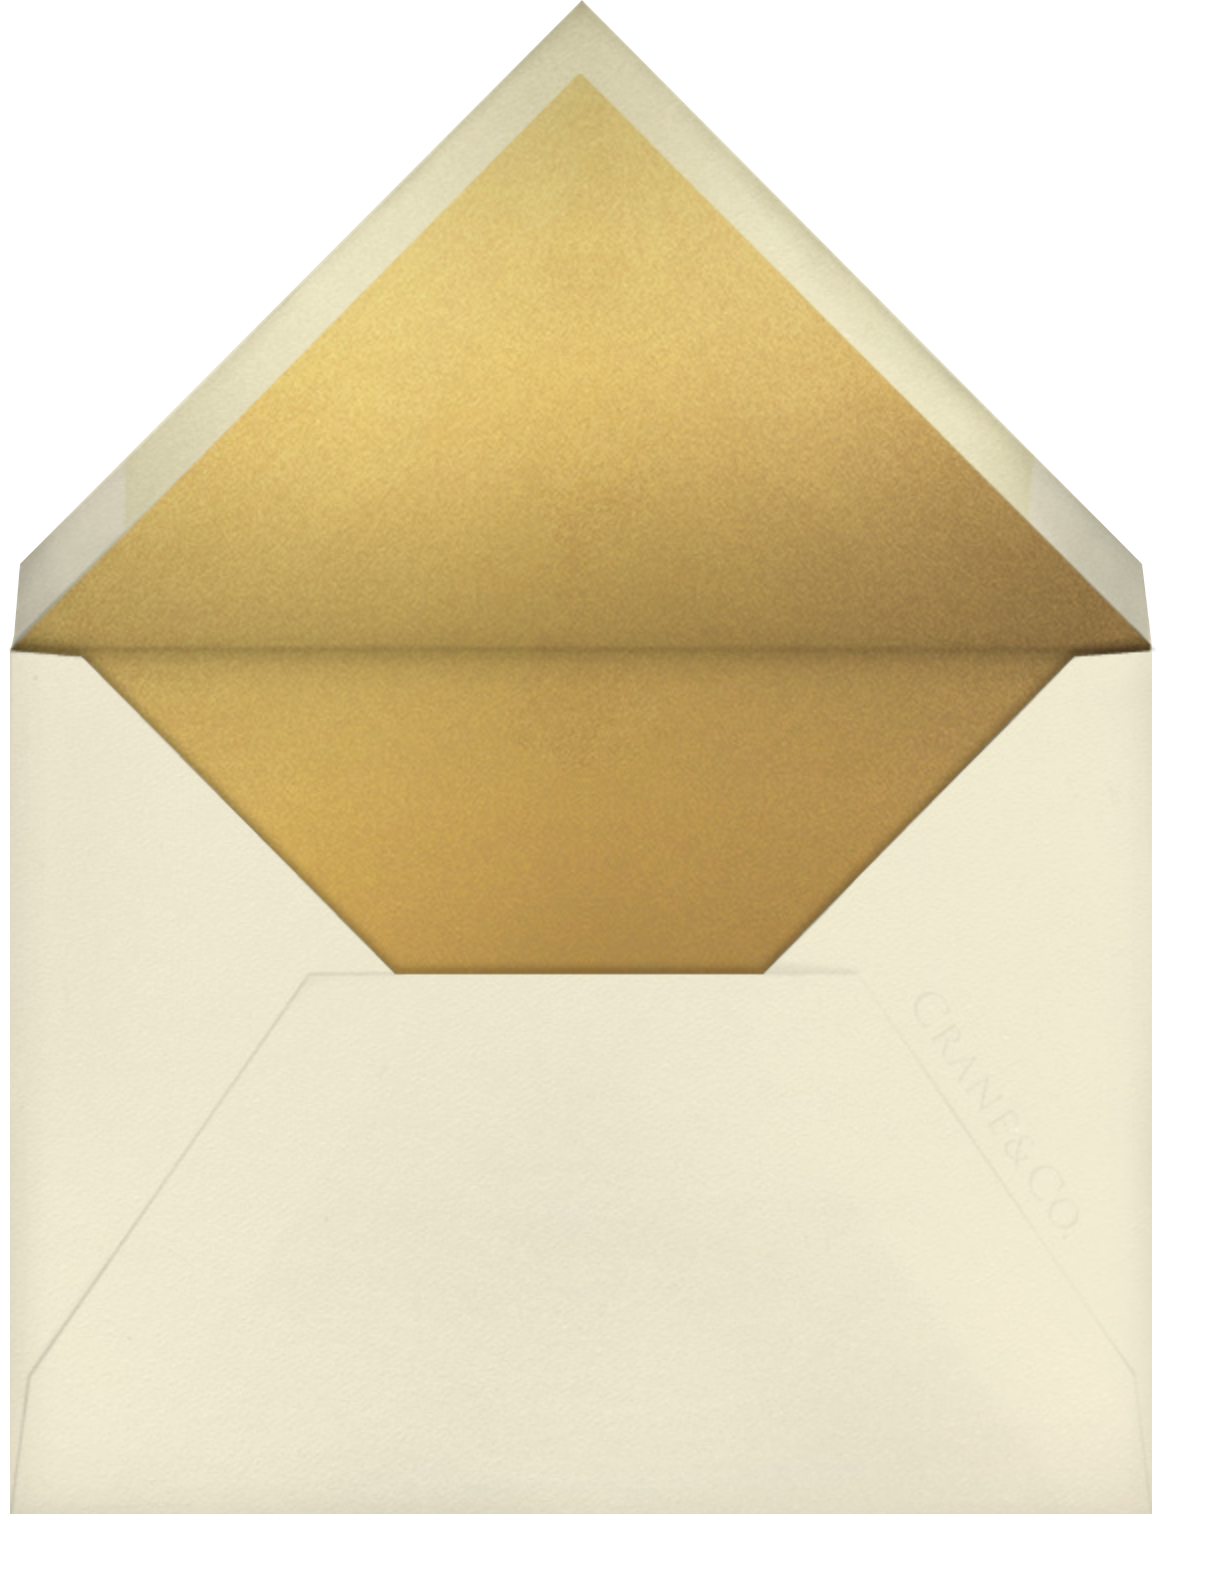 Orient Express – Medium Gold & Black - Crane & Co. - All - envelope back